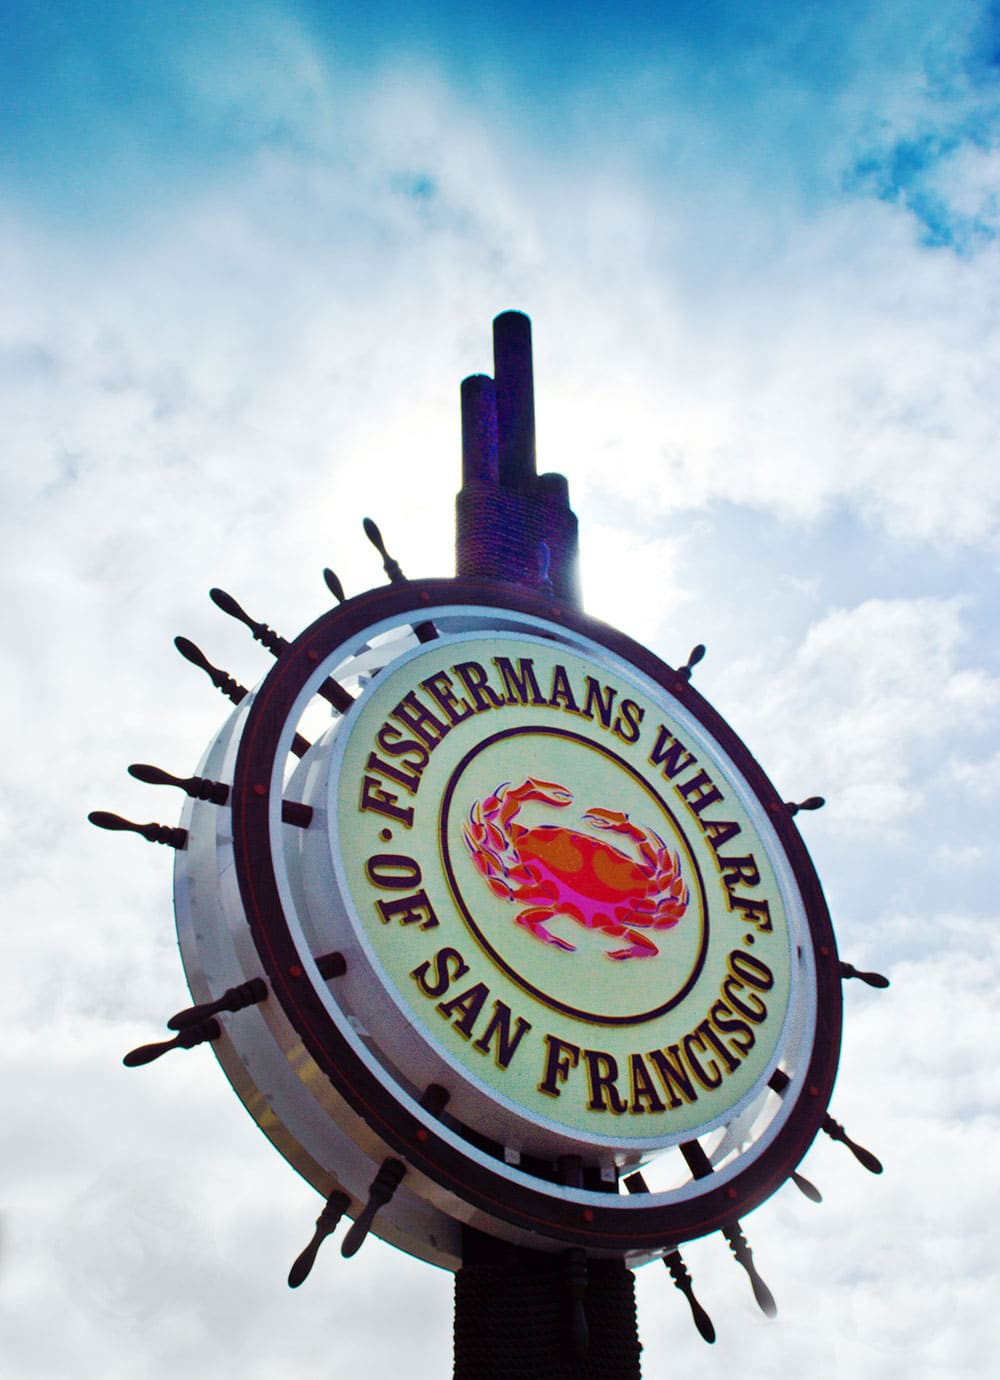 Scion Staffing San Francisco Image of Fishermans Wharf Sign